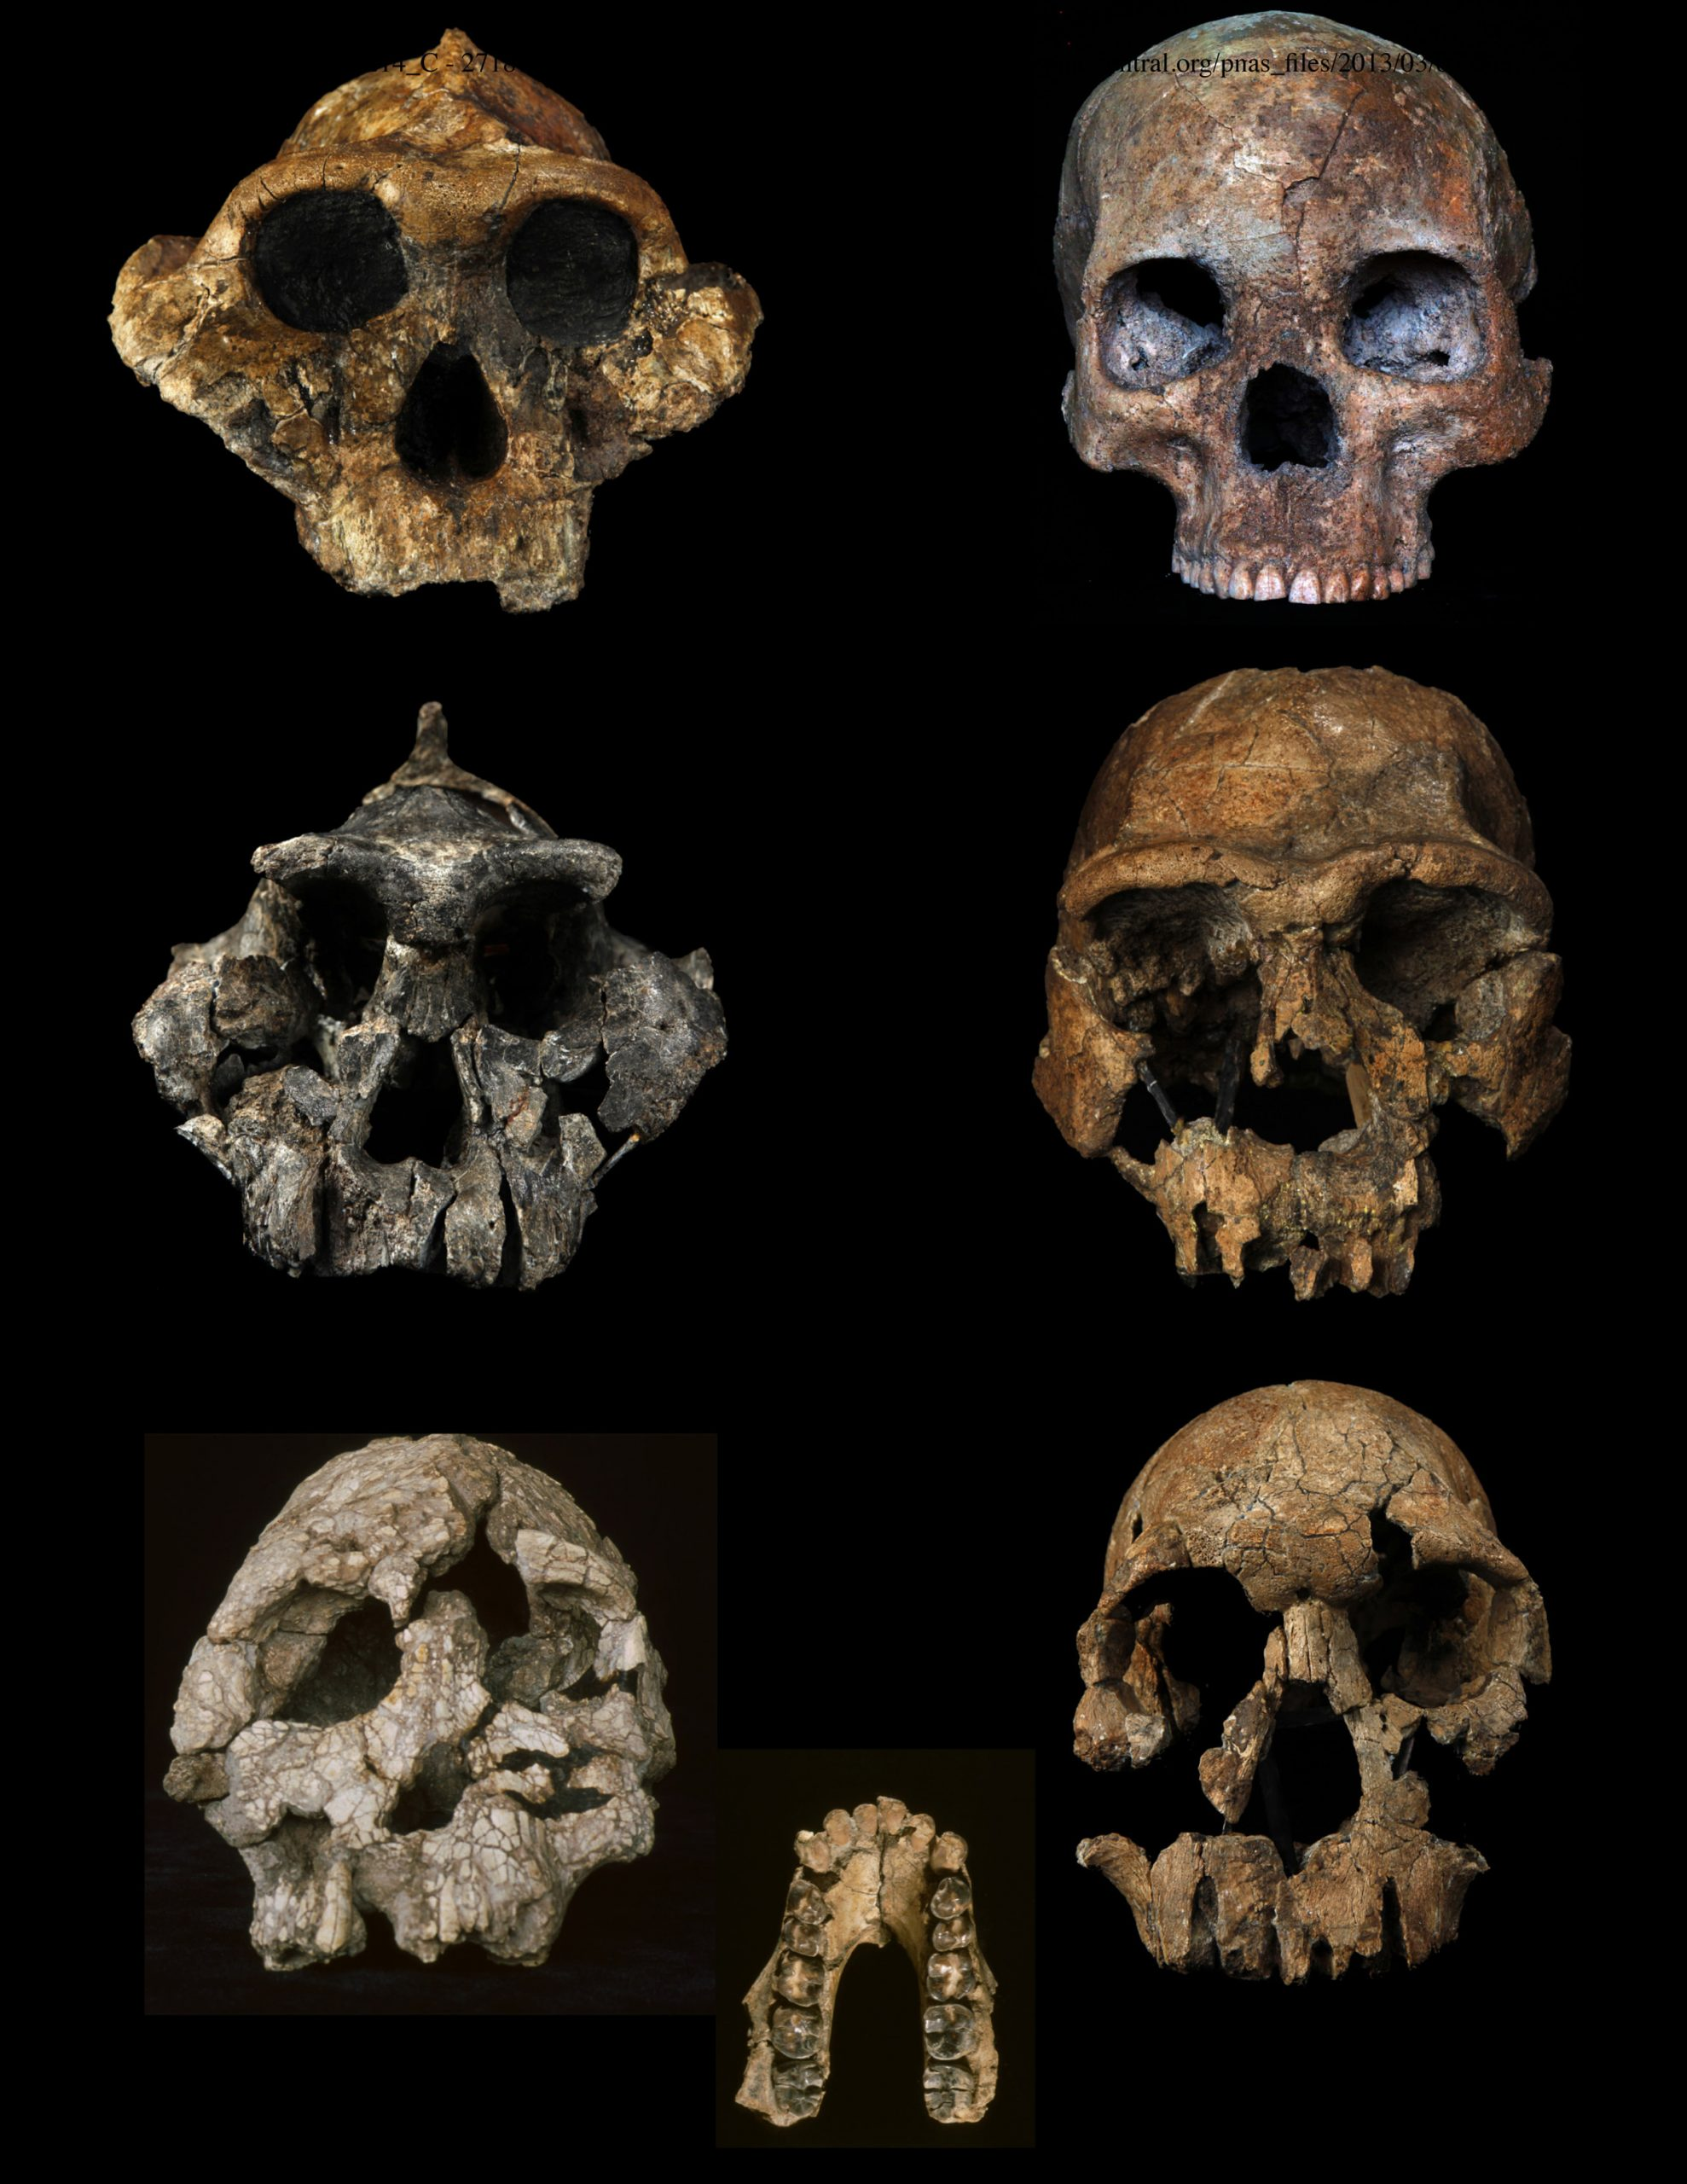 A set of new studies from the University of Utah and elsewhere found that human ancestors and relatives started eating an increasingly grassy diet 3.5 million years ago. The studies included analysis of tooth enamel  from fossils of several early African humans, their ancestors and extinct relatives, some of which are shown here. Top left: Paranthropus bosei, 1.7 million years ago. Top right: Homo sapiens, 10,000 years ago. Center left: Paranthropus aethiopicus, 2.3 million years ago. Center right: Homo ergaster, 1.6 million years ago. Bottom left: Kenyanthropus platyops, 3.3 million years ago. Bottom center: lower jaw from Australopithecus anamensis, 4 million years ago. Bottom right: Homo rudolfensis, 1.9 million years ago.